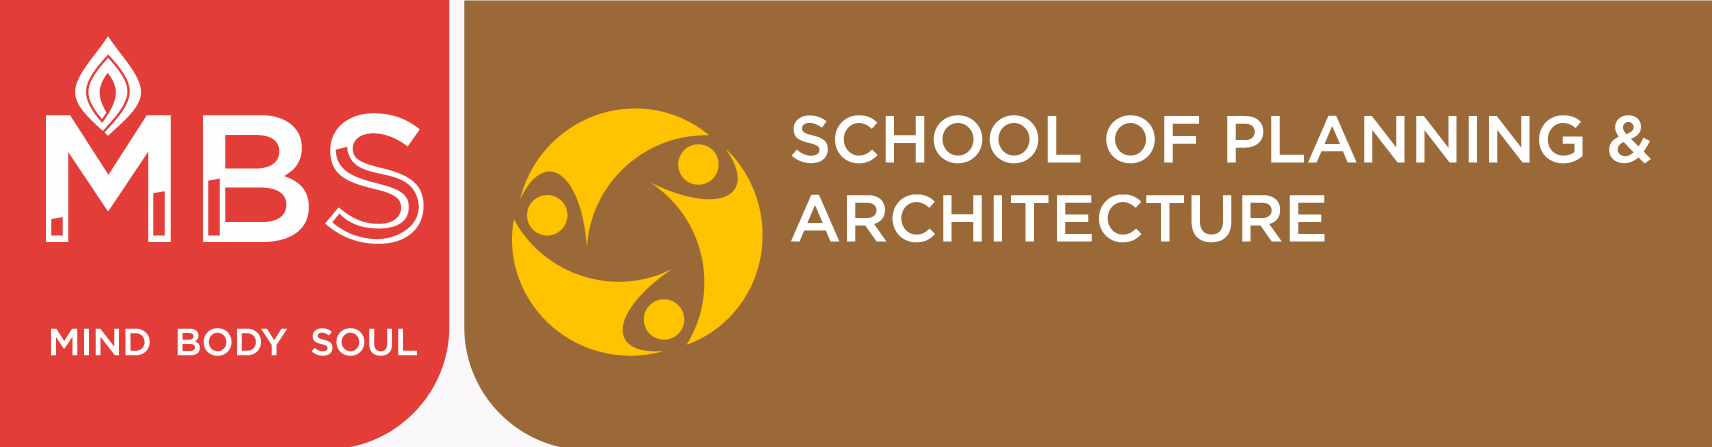 """MBS School of Planning and Architecture- Ready for """"The New Beginning"""""""